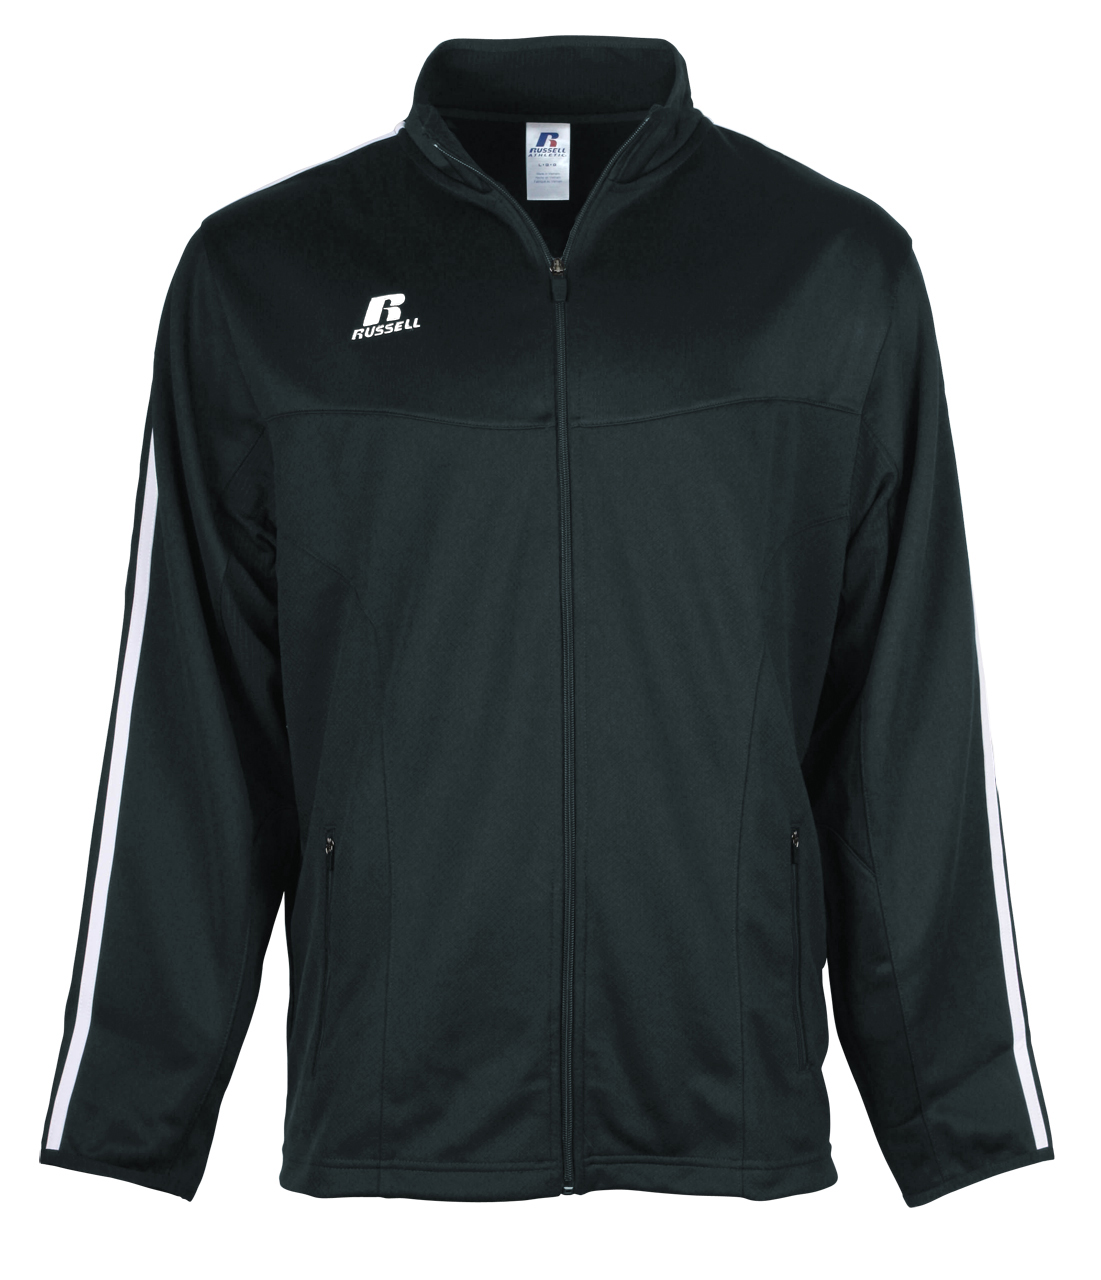 Picture of RUSSELL ATHLETIC Mens Team Game Day Warm-up Jacket